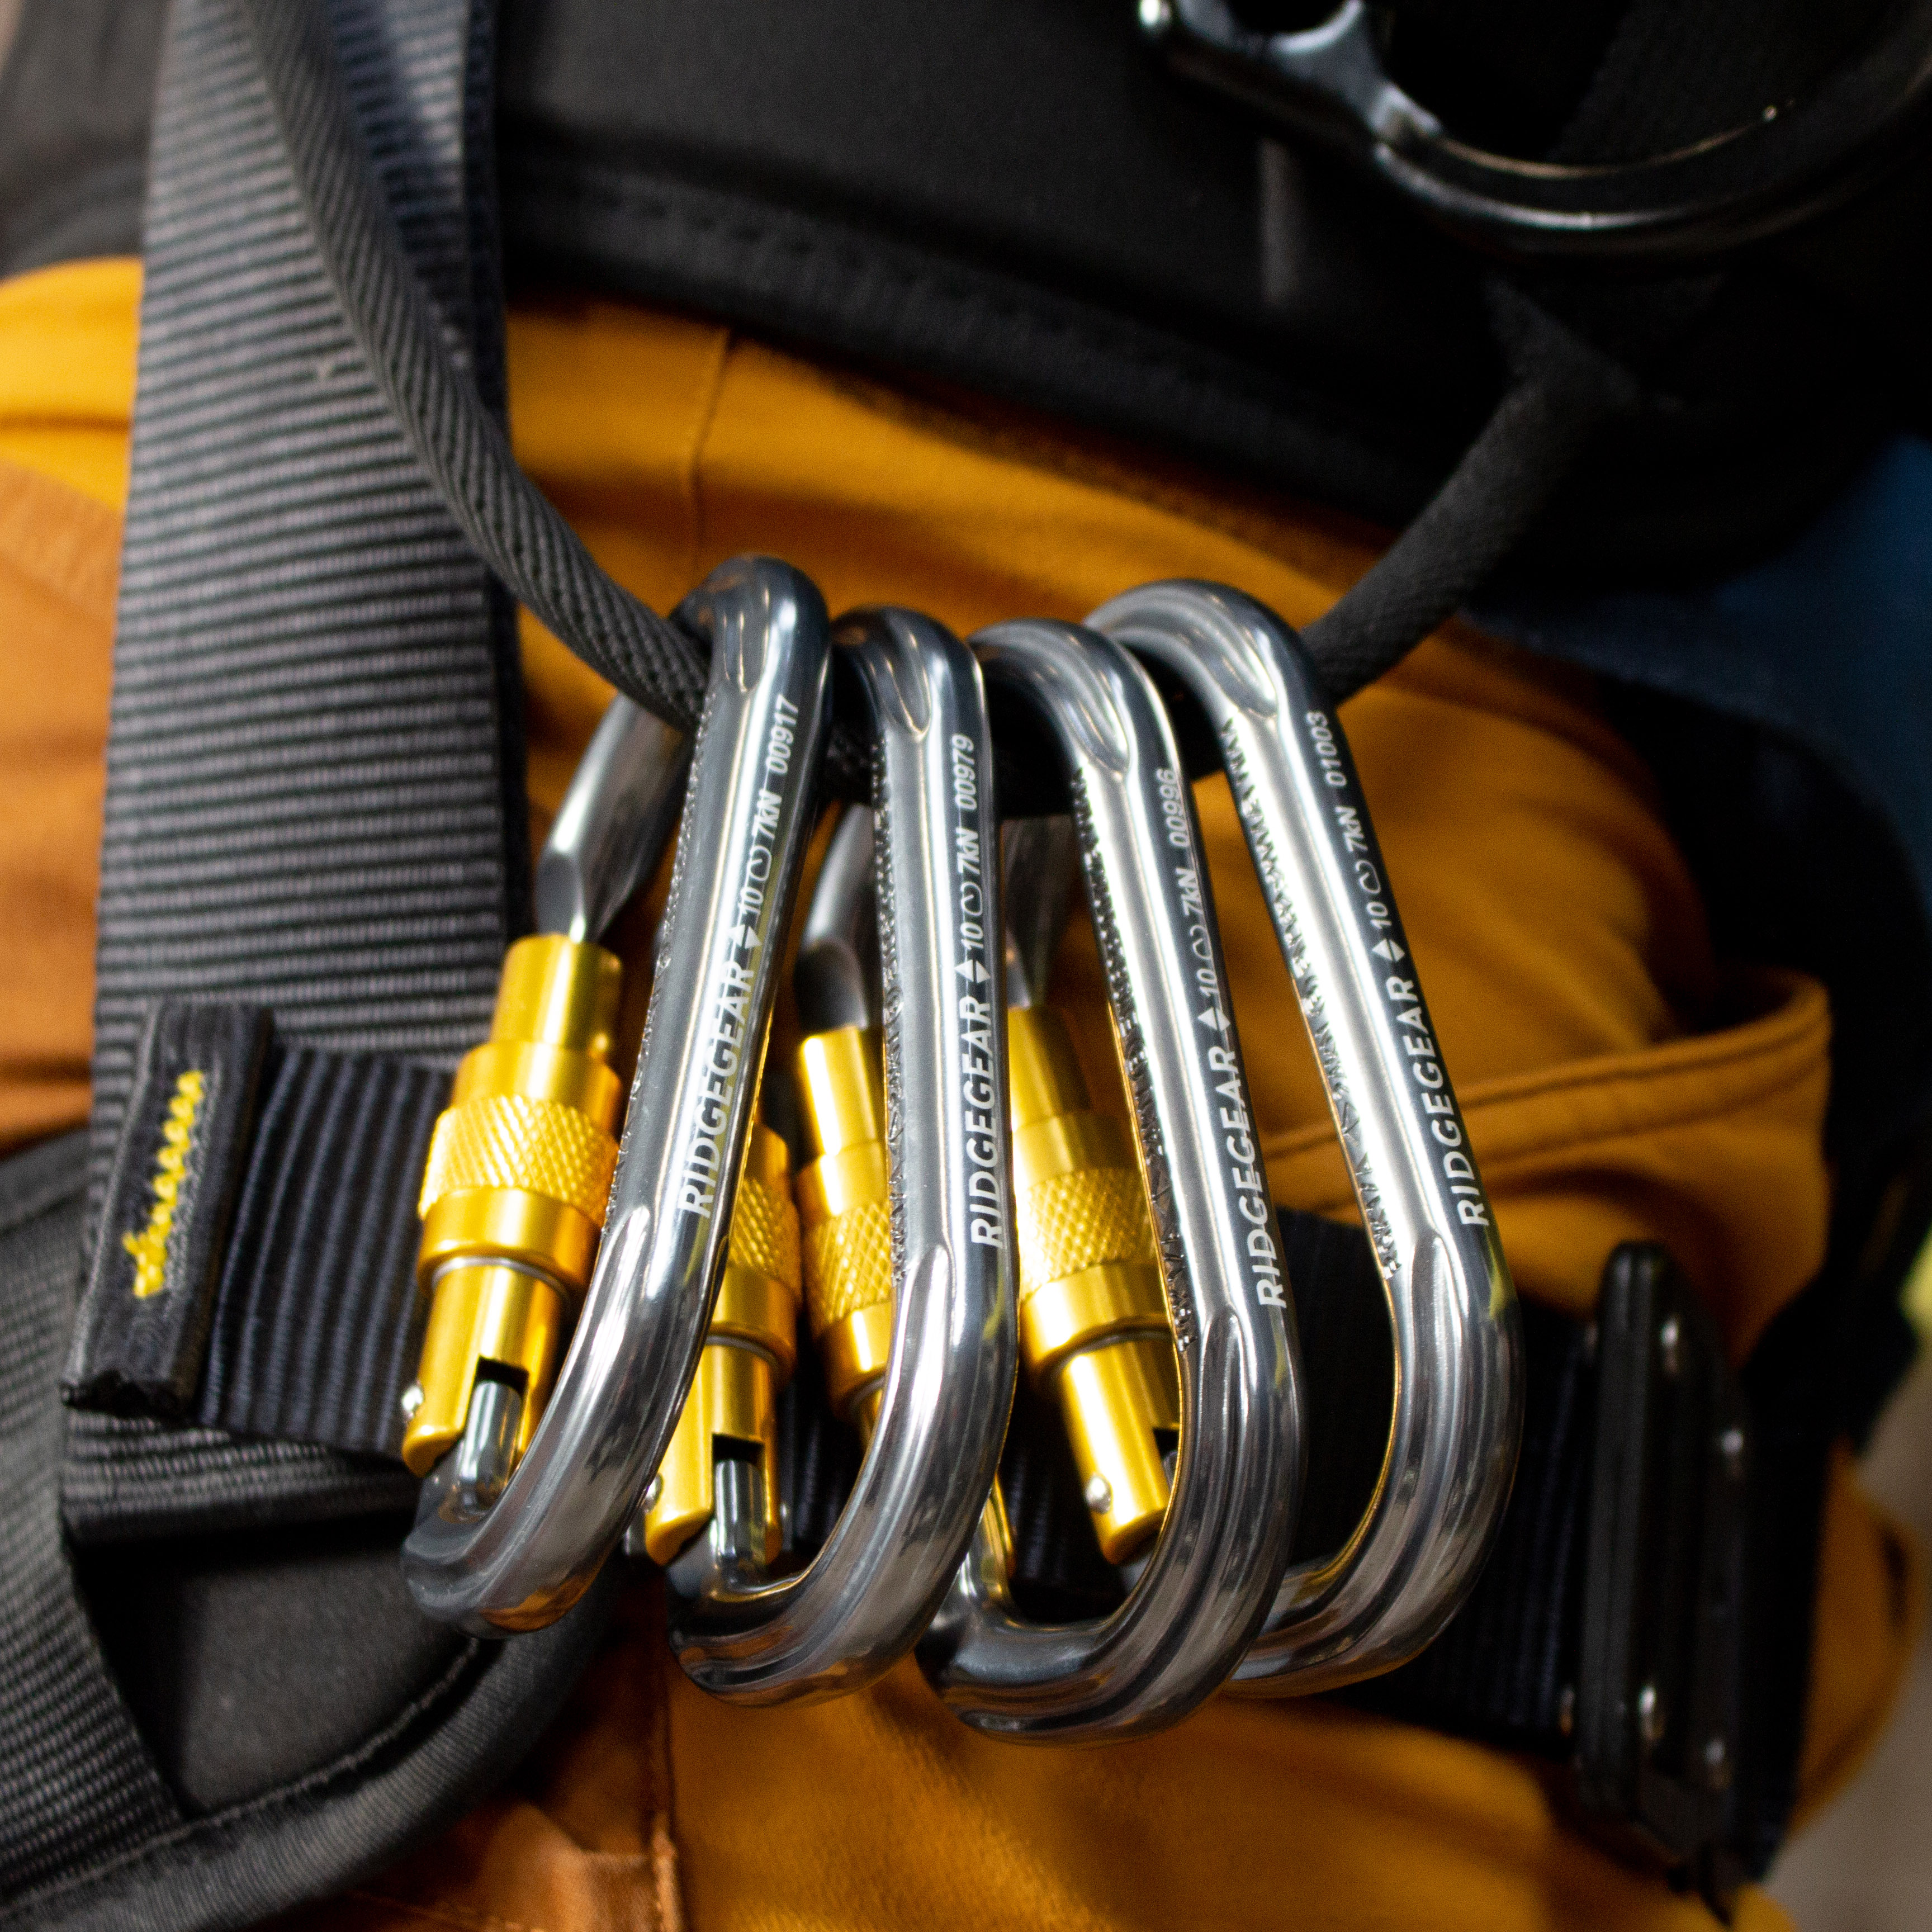 Multiple silver aluminium karabiners with yellow screwgate conected to tool loop of safety harness